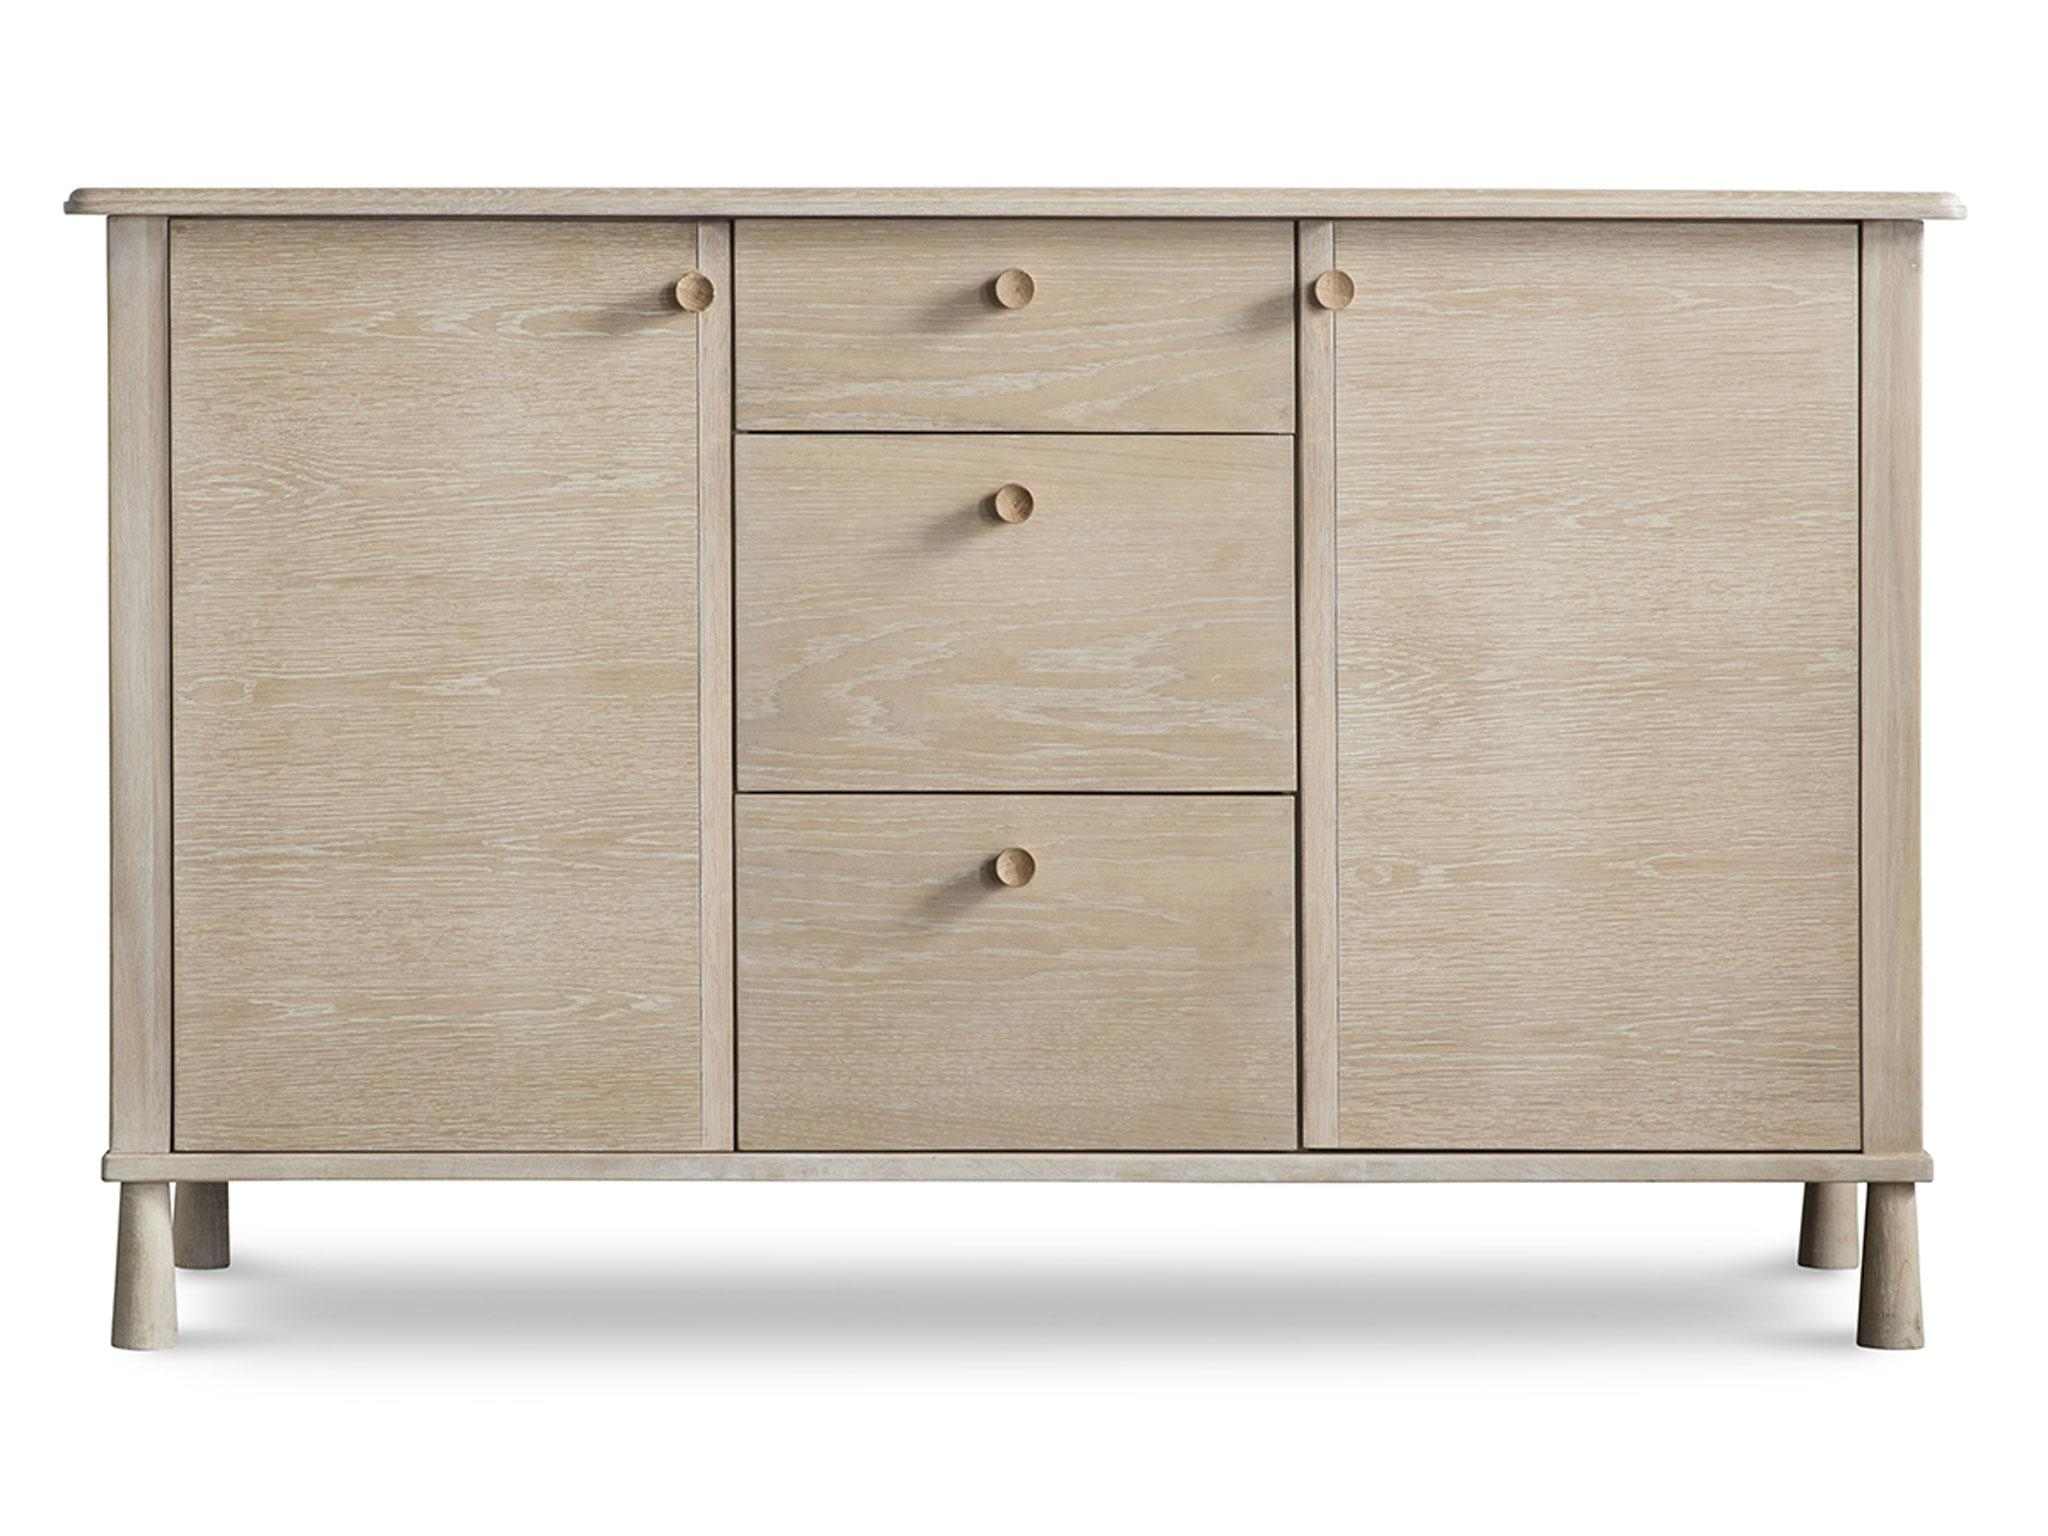 Oil Pale Finish 4 Door Sideboards Intended For Most Up To Date 10 Best Sideboards (View 4 of 20)